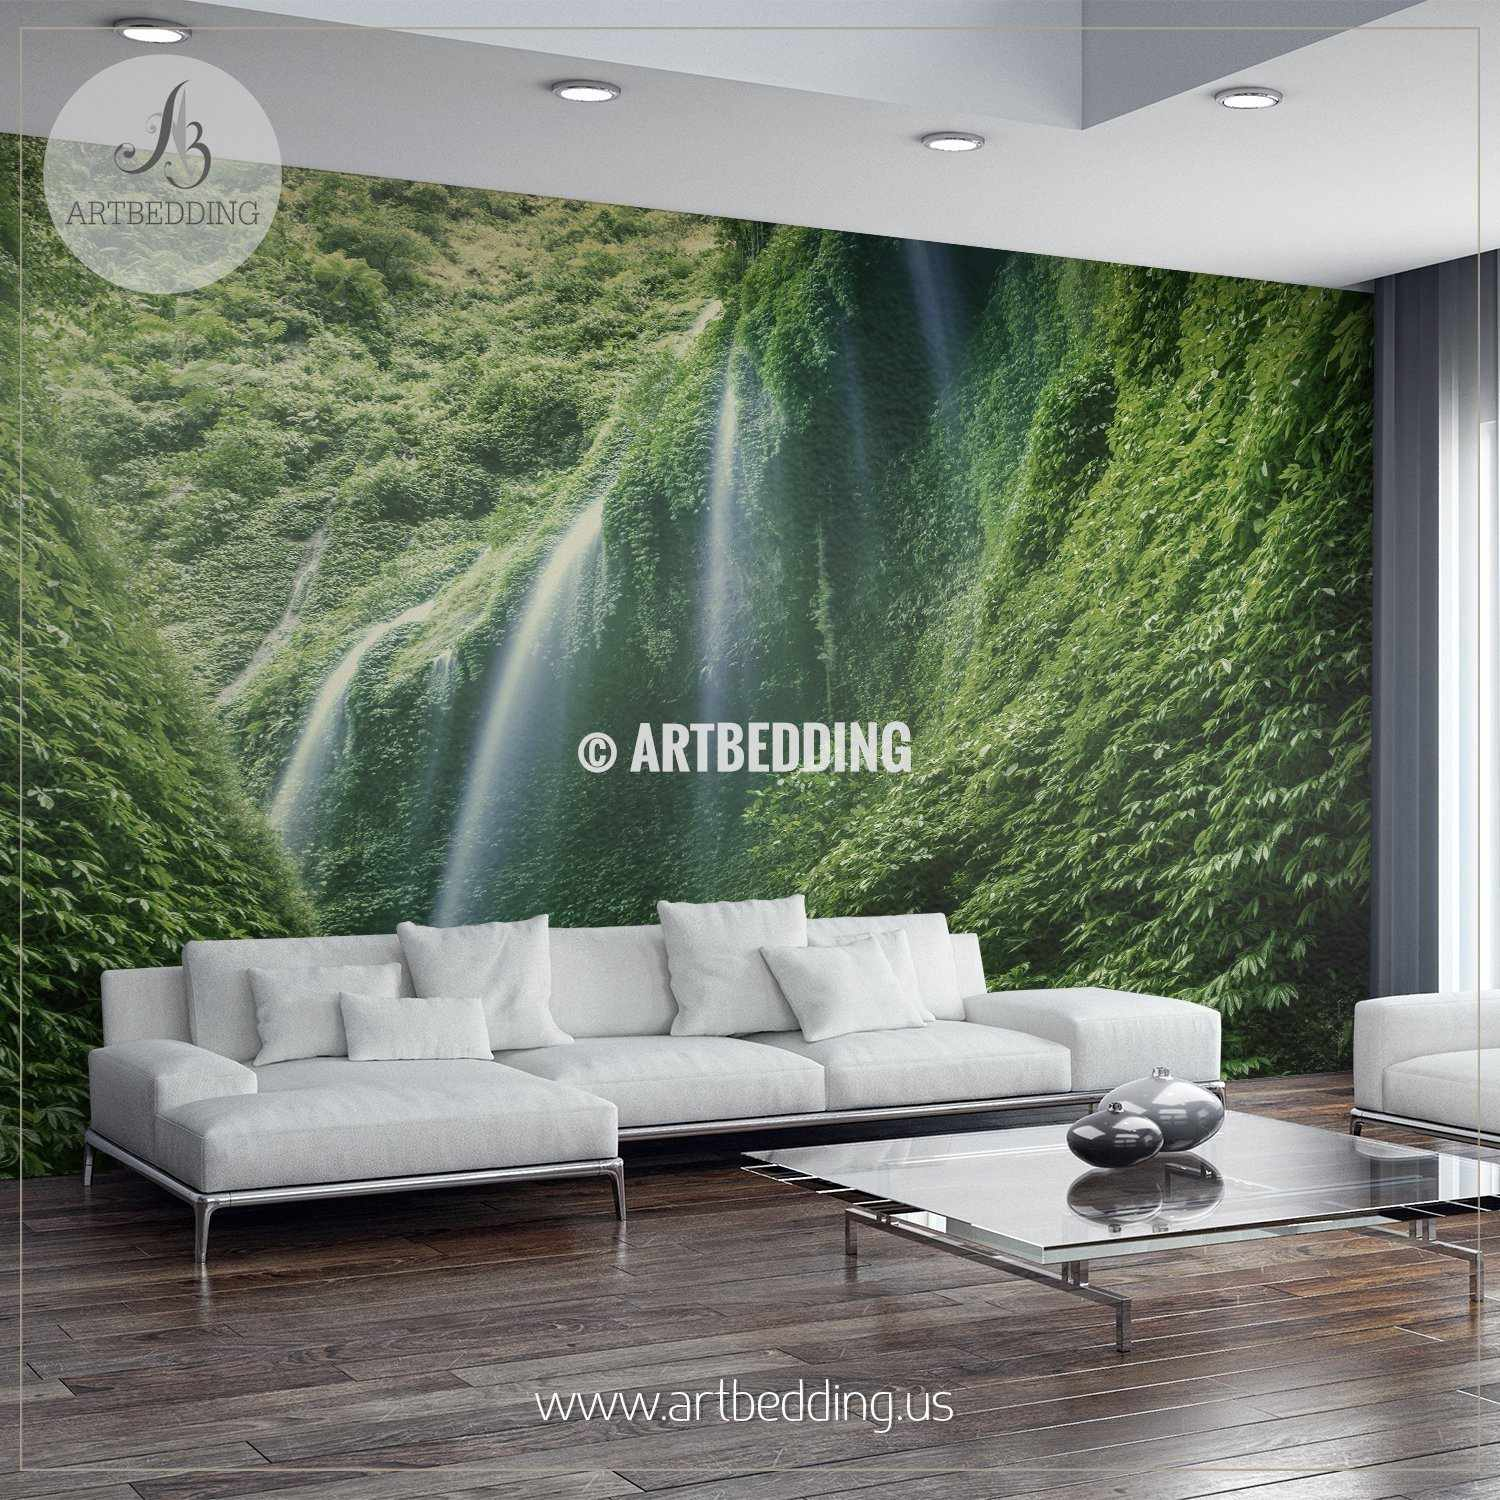 Indonesian Forest Waterfalls Wall Mural Self Adhesive Peel Stick